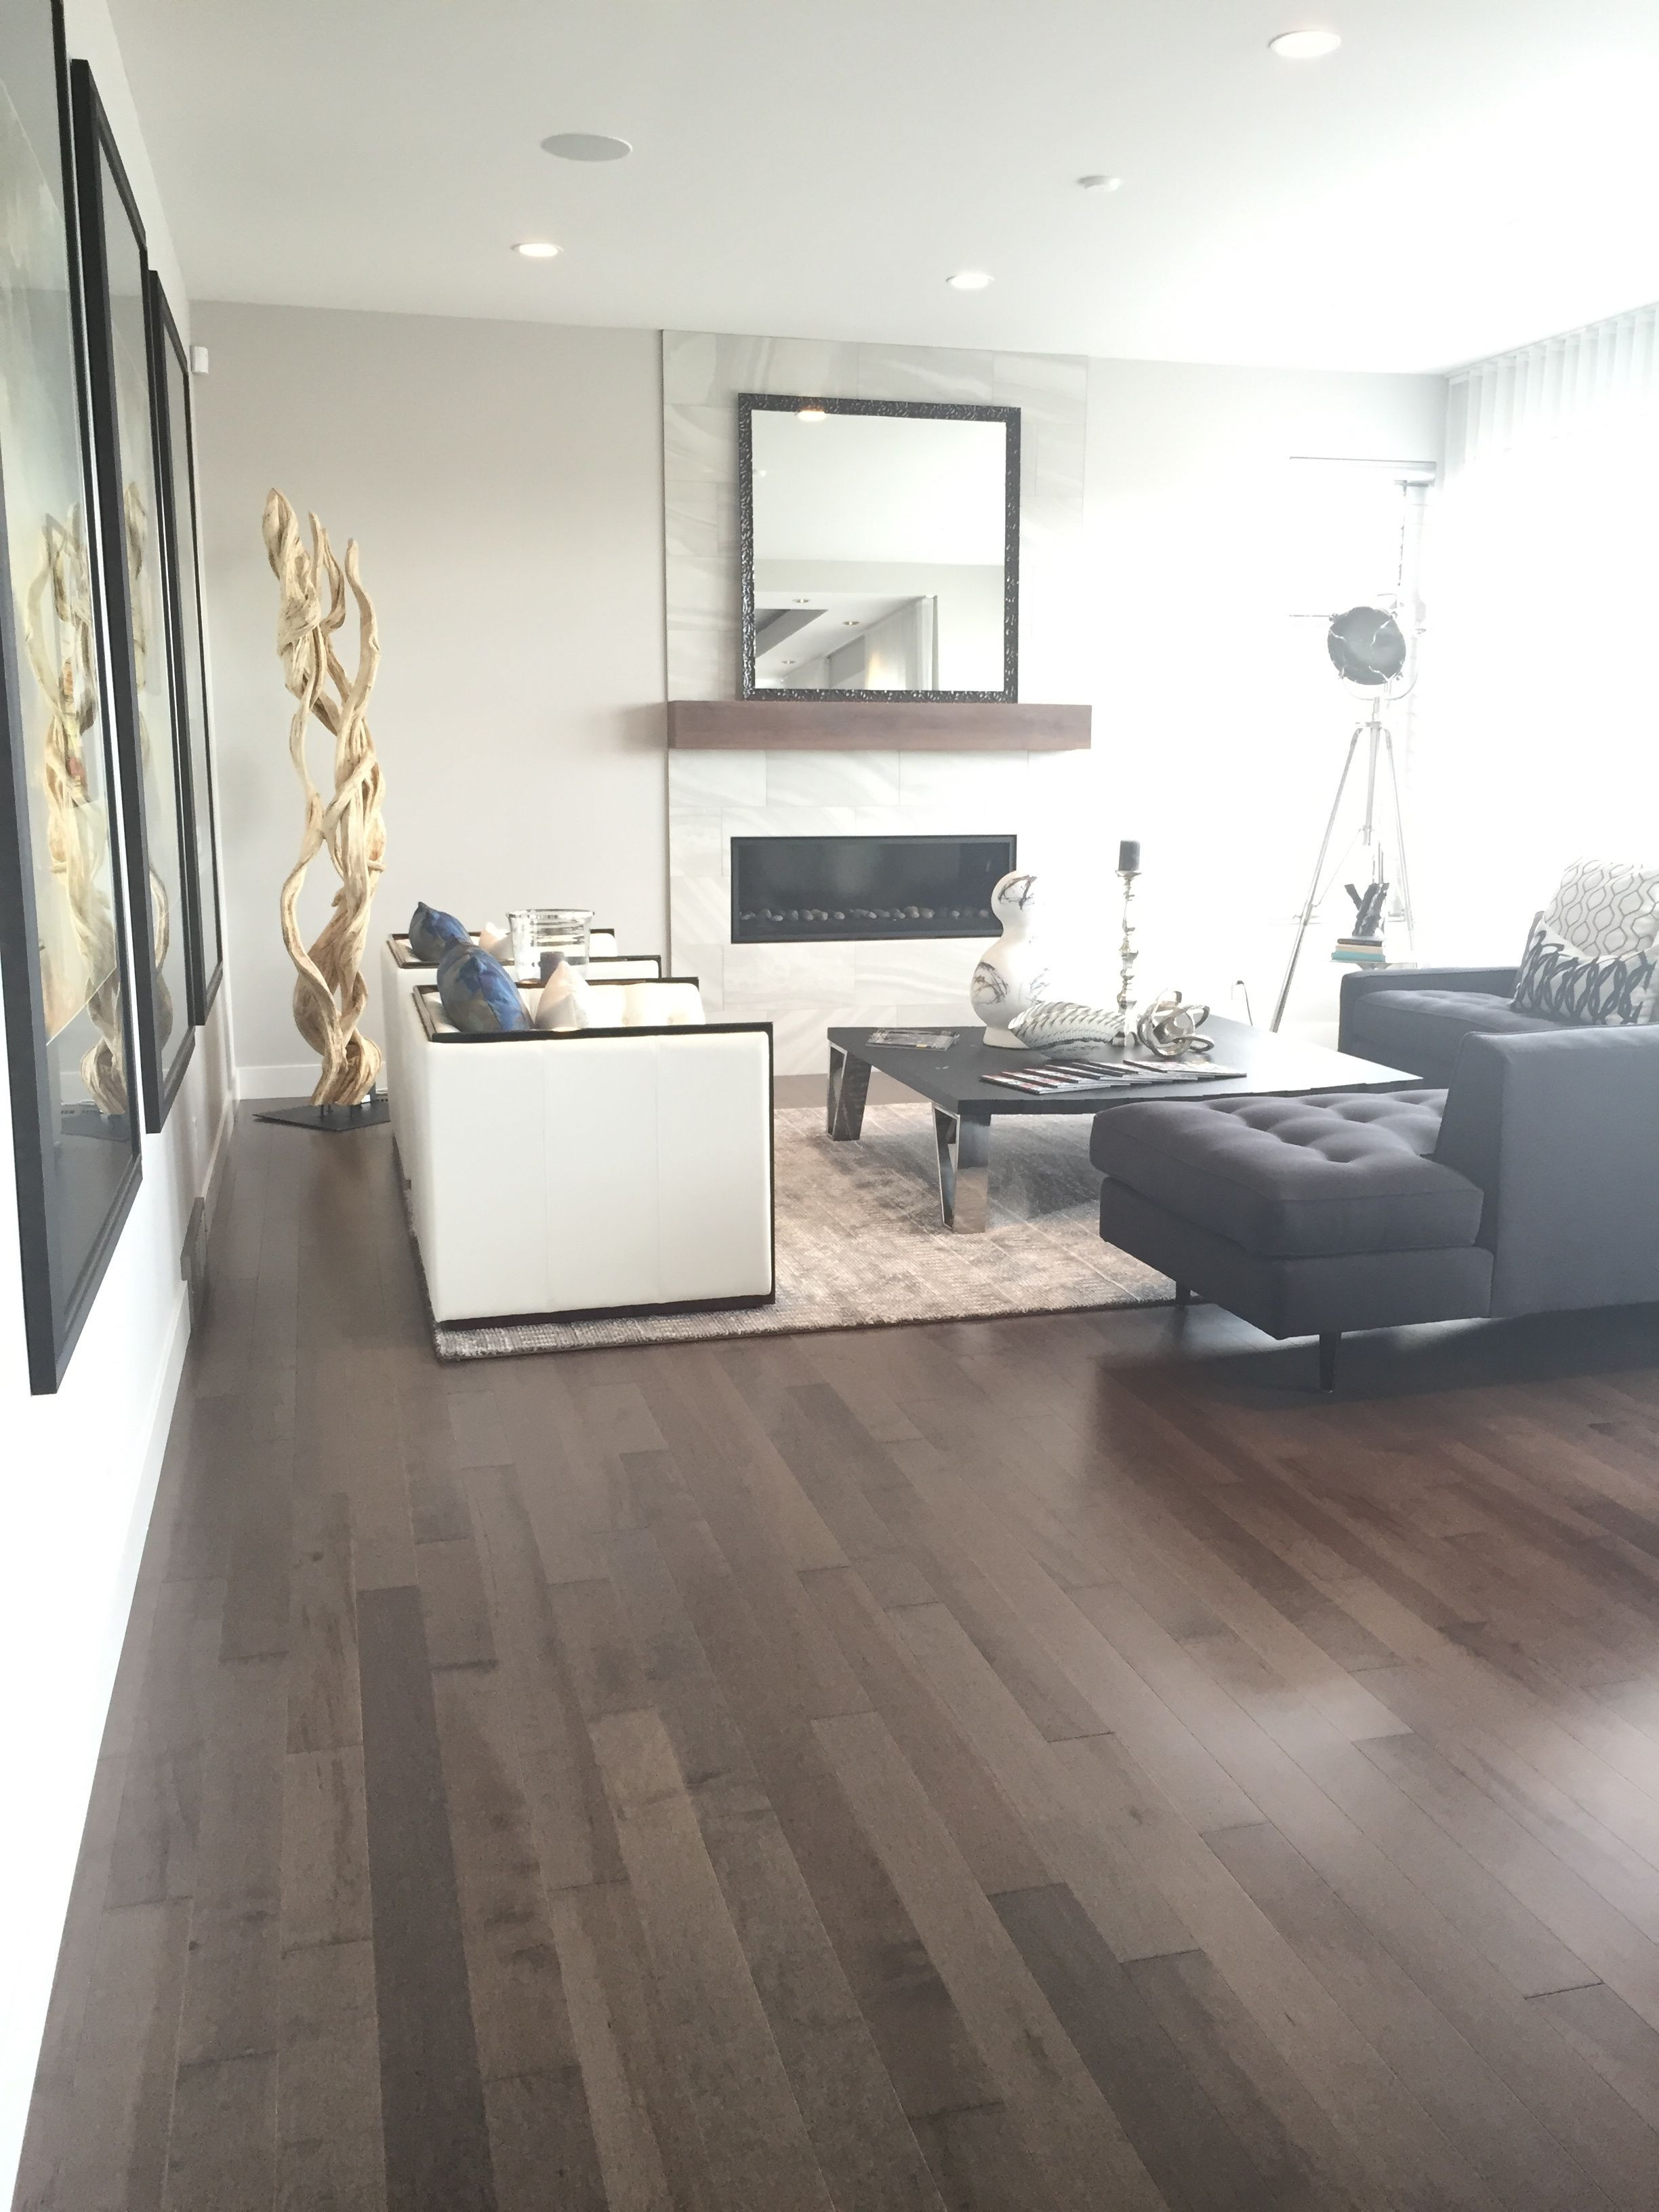 rustic hardwood flooring ideas of smoky grey essential hard maple tradition lauzon hardwood within beautiful living room from the cantata showhome featuring lauzons smokey grey hard maple hardwood flooring from the essential collection